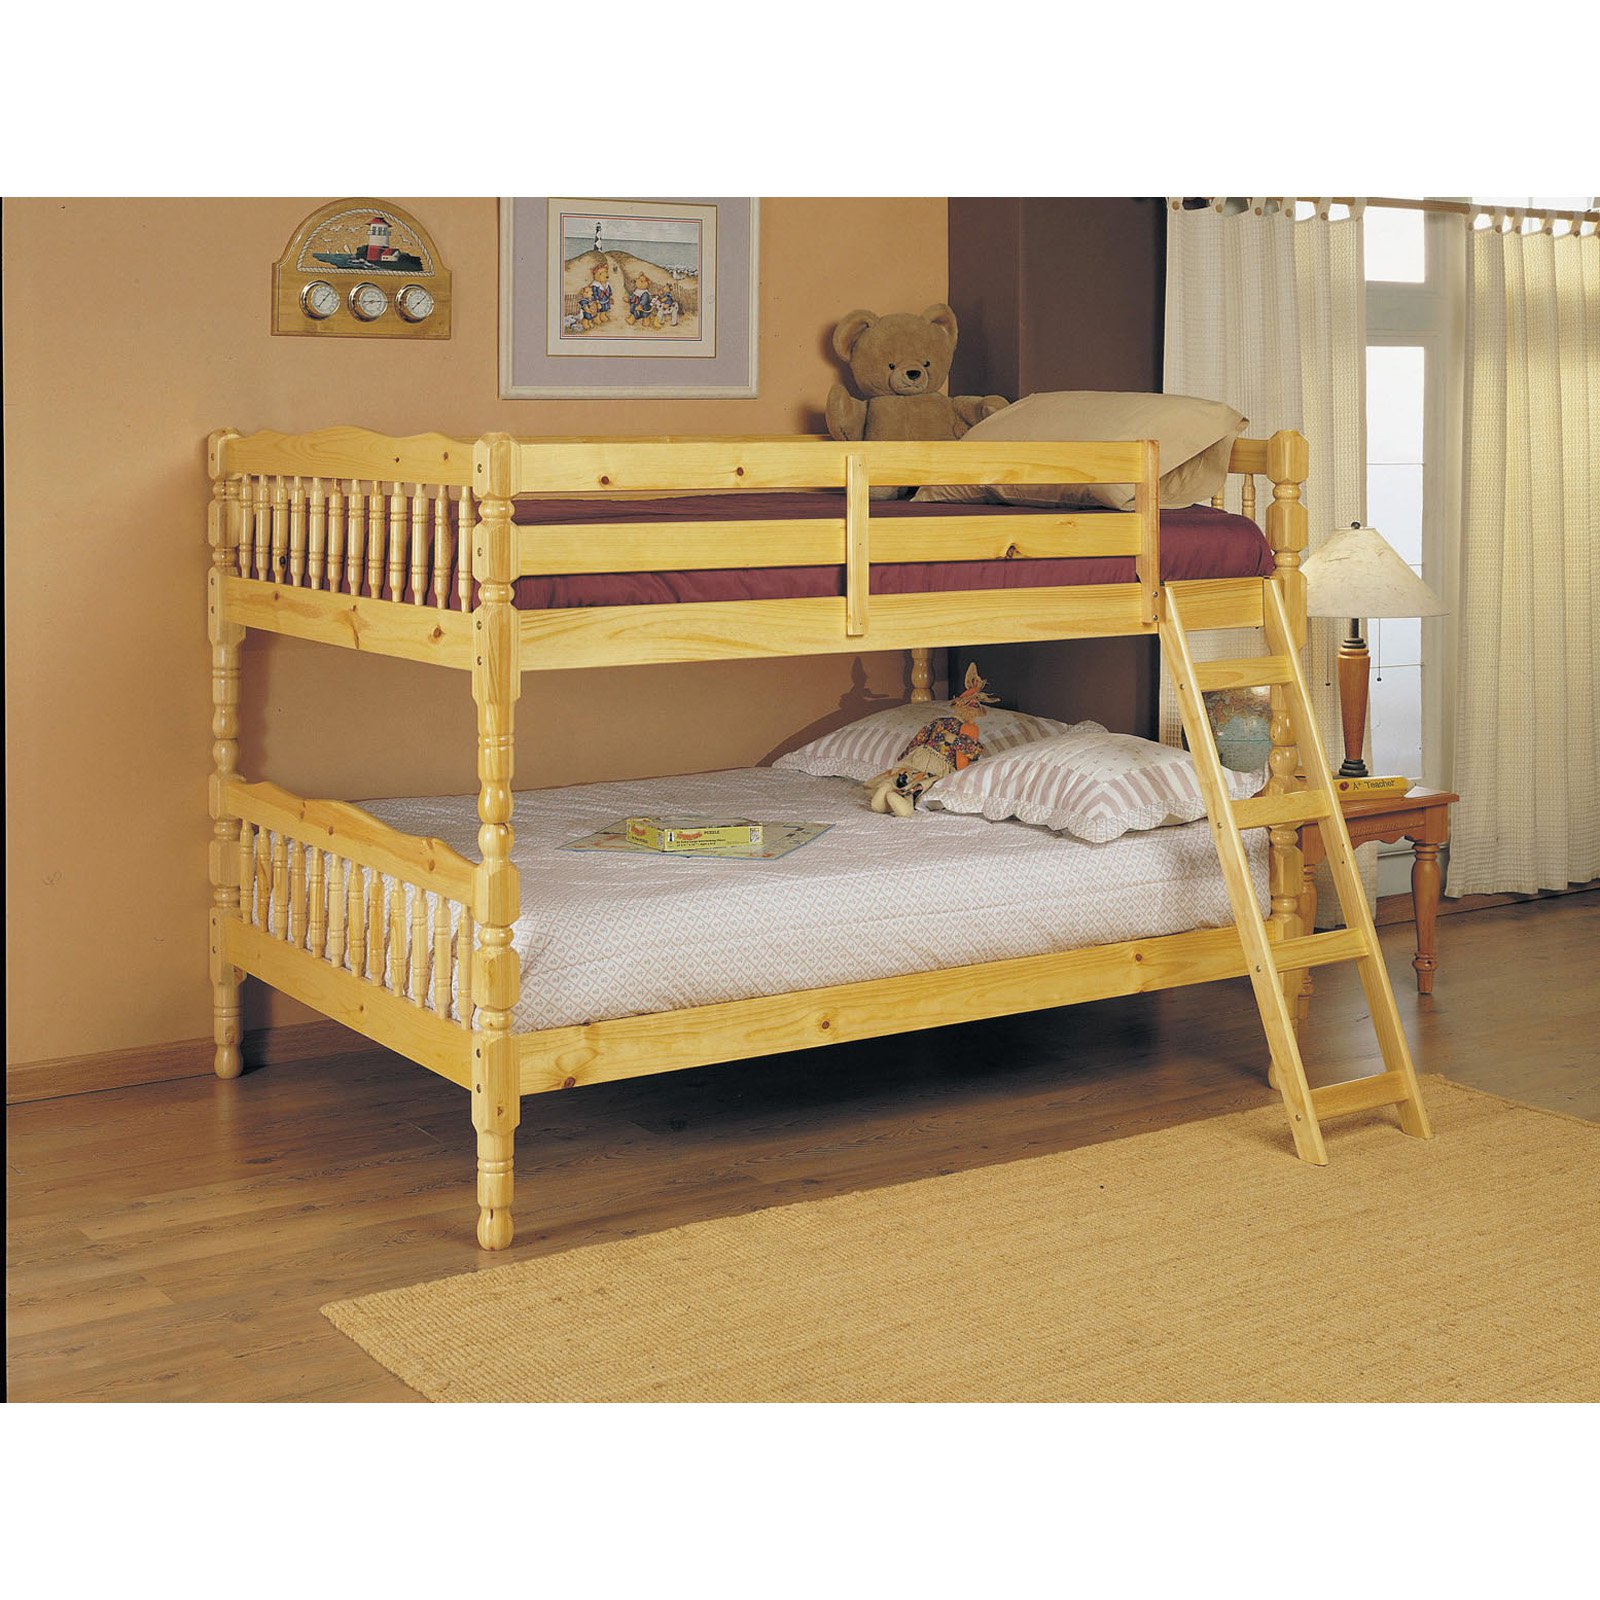 ACME Homestead Full over Full Convertible Bunk Bed in Natural